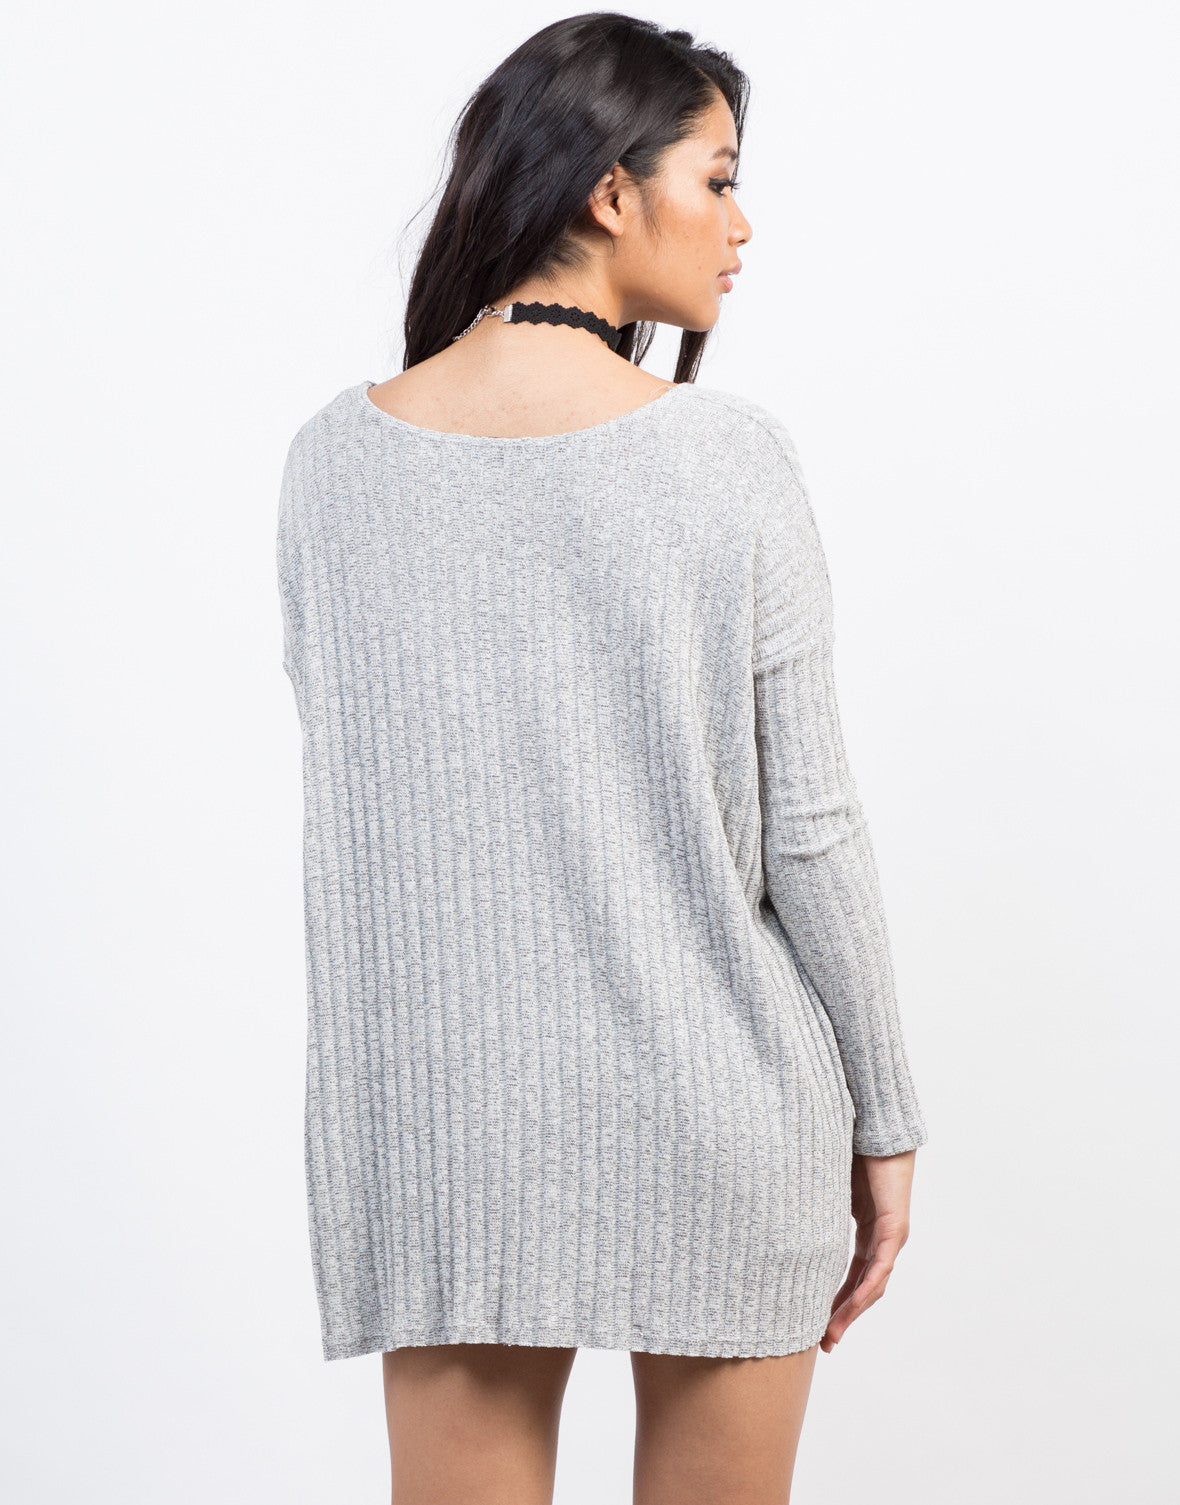 Back View of Rib Knit Top